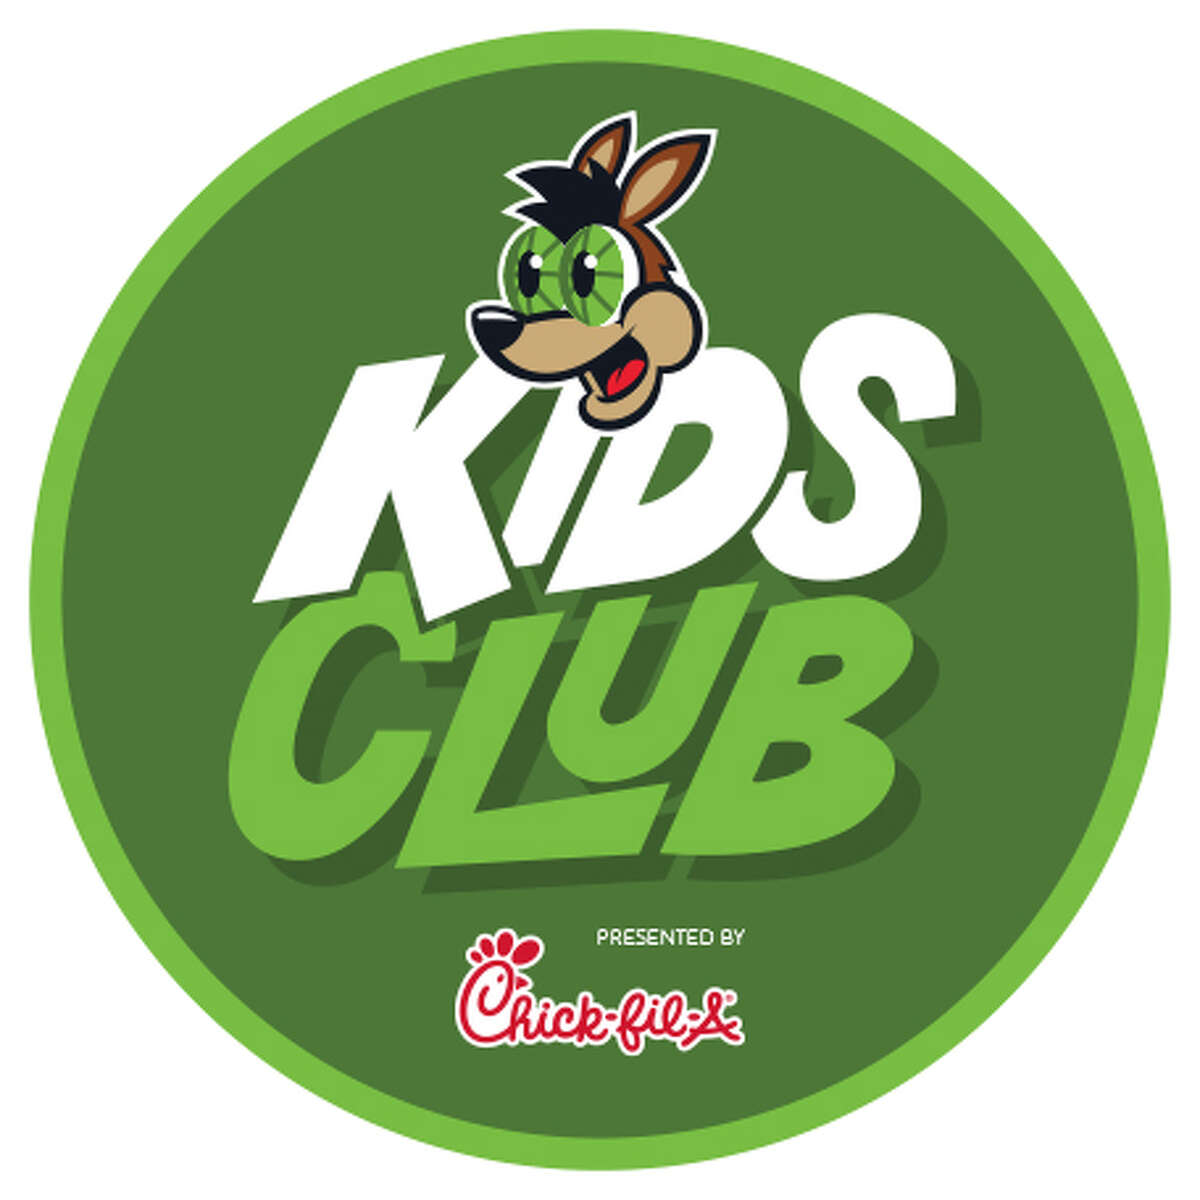 Coyote Kids Club  Spurs Sports and Entertainment announced the launch of the new Coyote Kids Club for the 2019-2020 season in October. The club, presented by Chick-fil-A, gives kid fans access to members-only events, merchandise like t-shirts and backpacks, discounts, coupons and a ticket to a Spurs and Rampage home game. While the Spurs have had similar programs in the past, this is